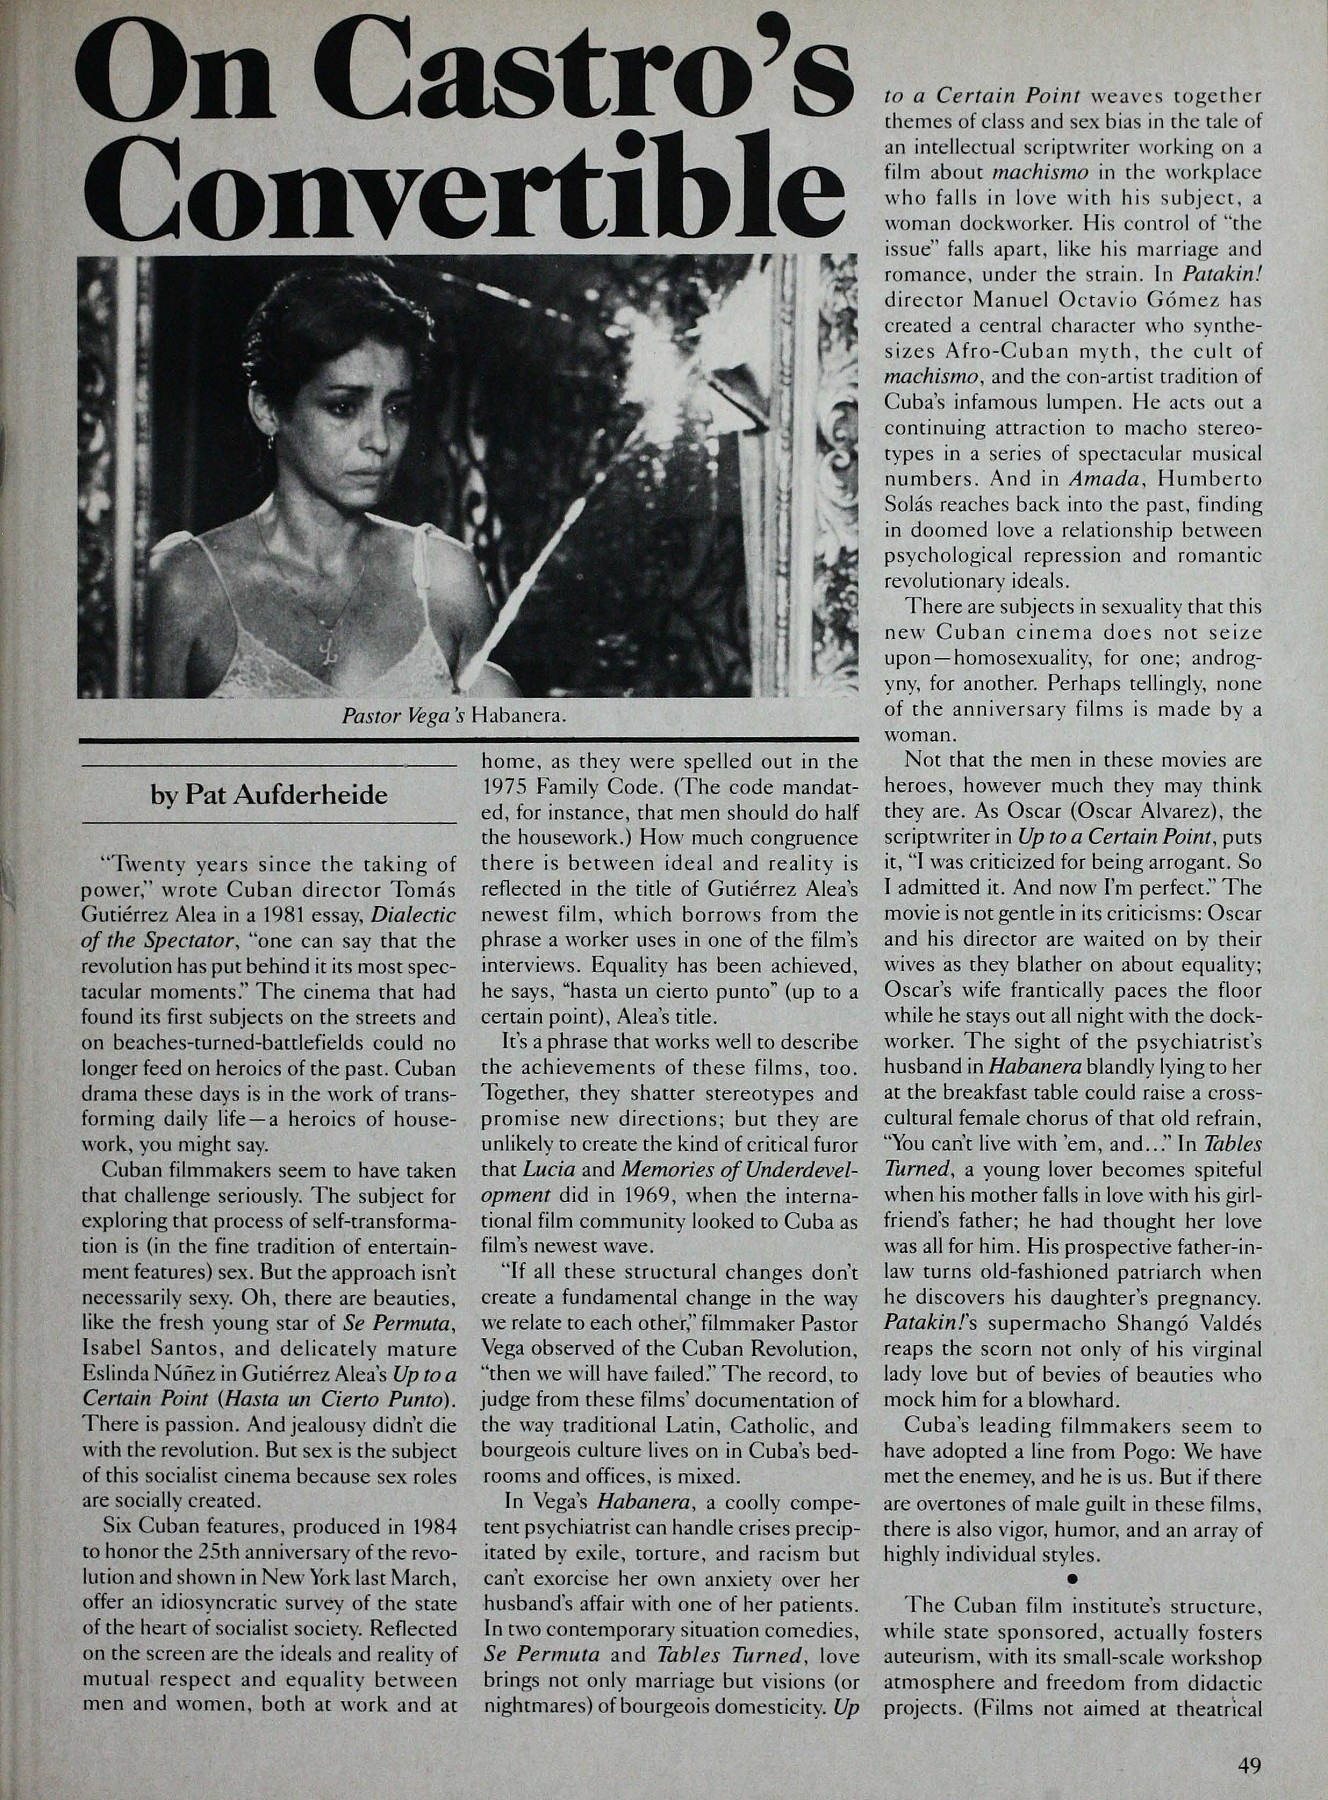 Amber Blank Sauce Porn volume 21 - number 03 may-june 1985-flip book pages 51-84